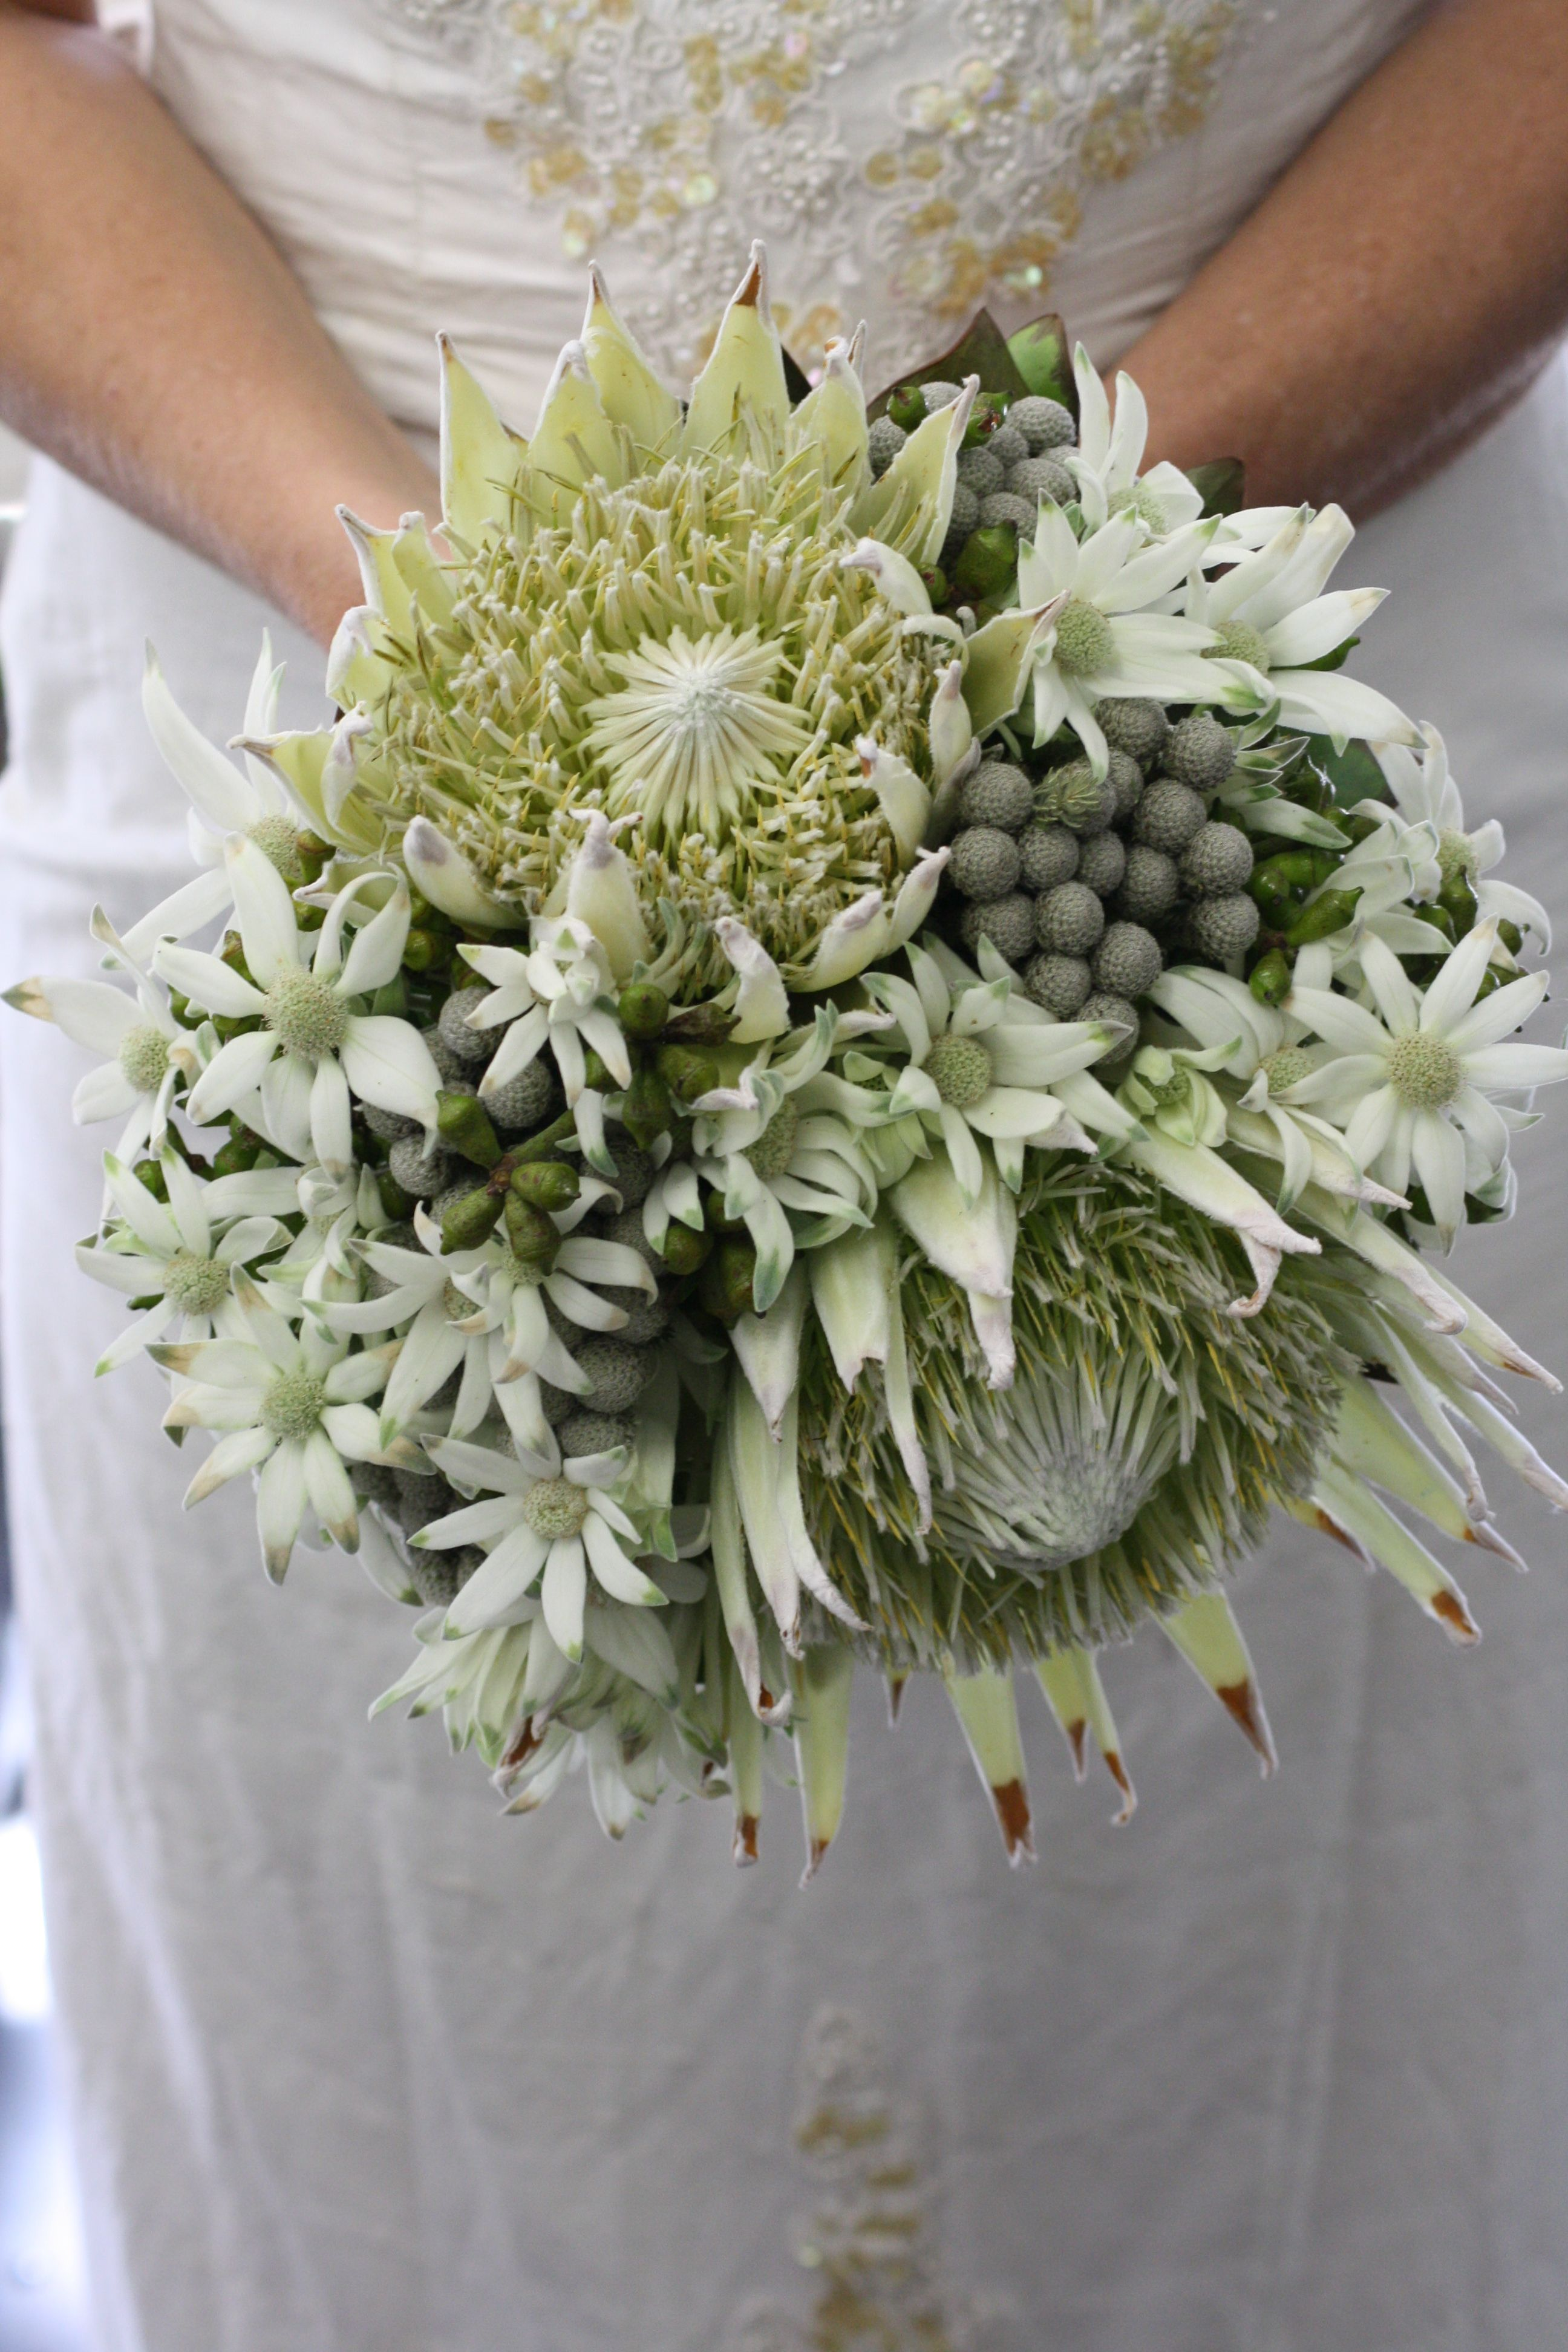 Australian native wedding bouquet wedding ideas pinterest love this native australian flannel flowers in this bouquet mix in with english flowers izmirmasajfo